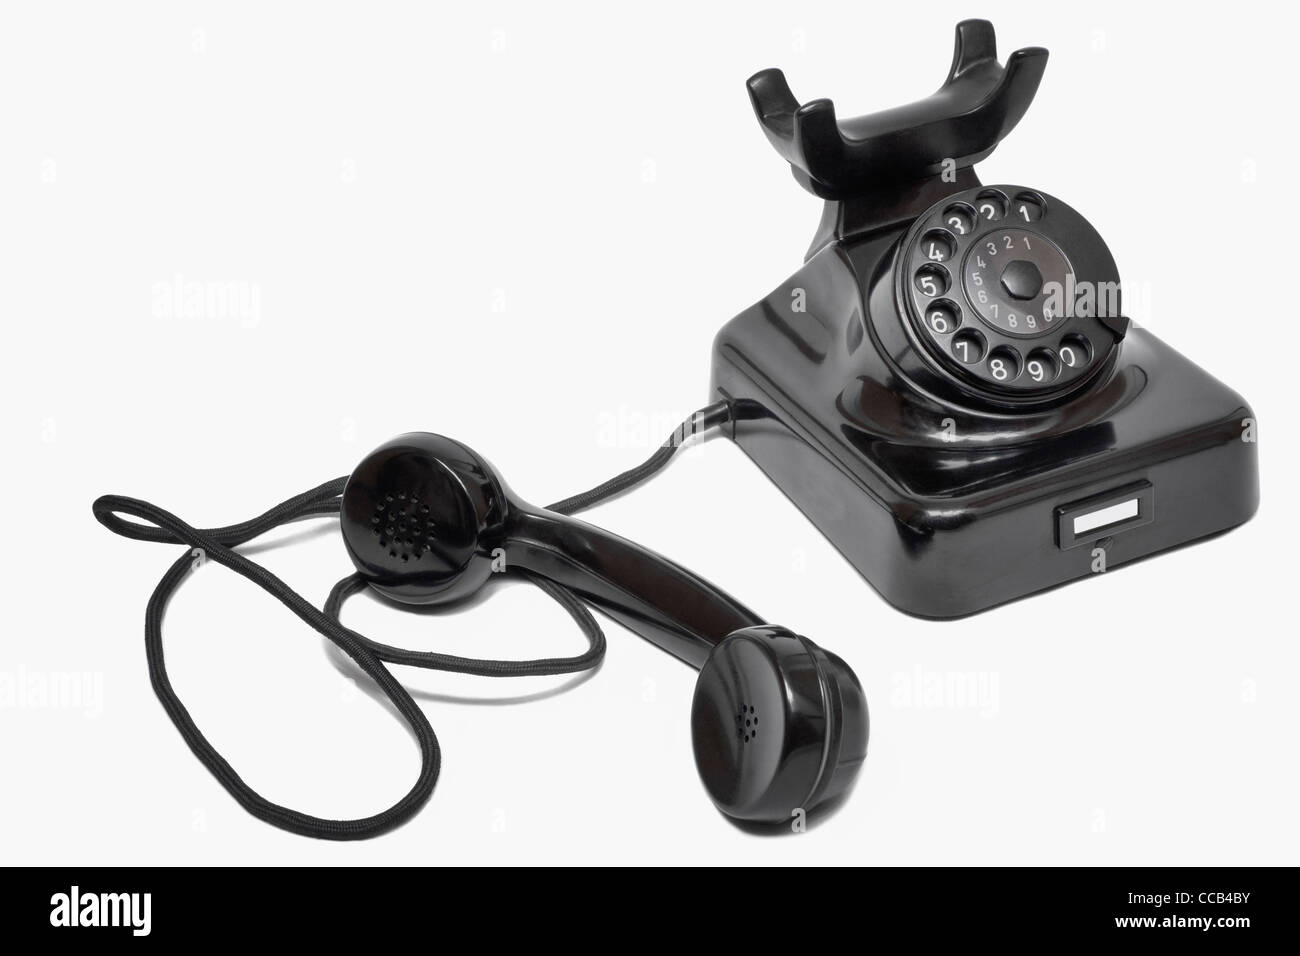 Detail photo of a old black telephone, alongside is the telephone receiver - Stock Image